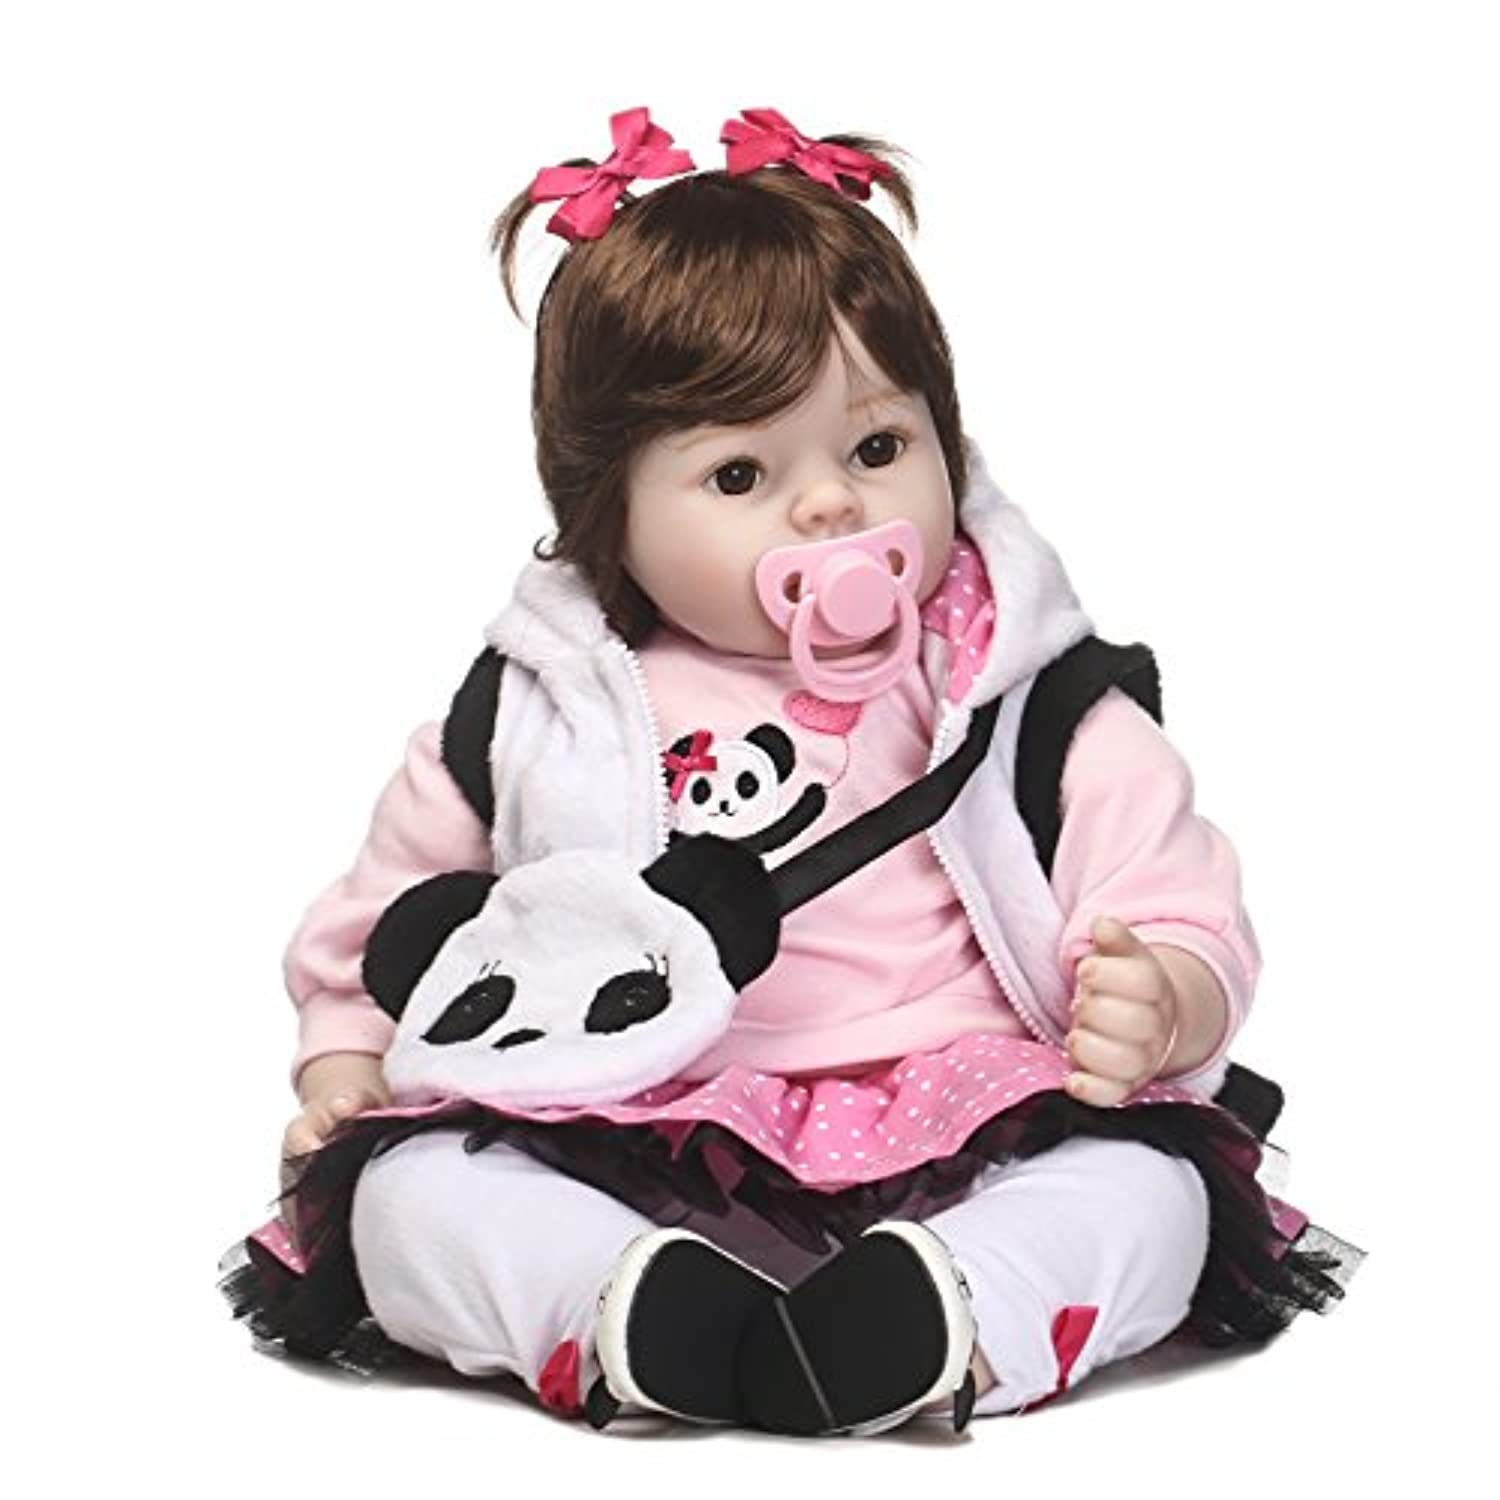 SanyDoll Rebornベビー人形ソフトSilicone 22インチ55 cm磁気Lovely Lifelike Cute Lovely Baby b0763lrv9s